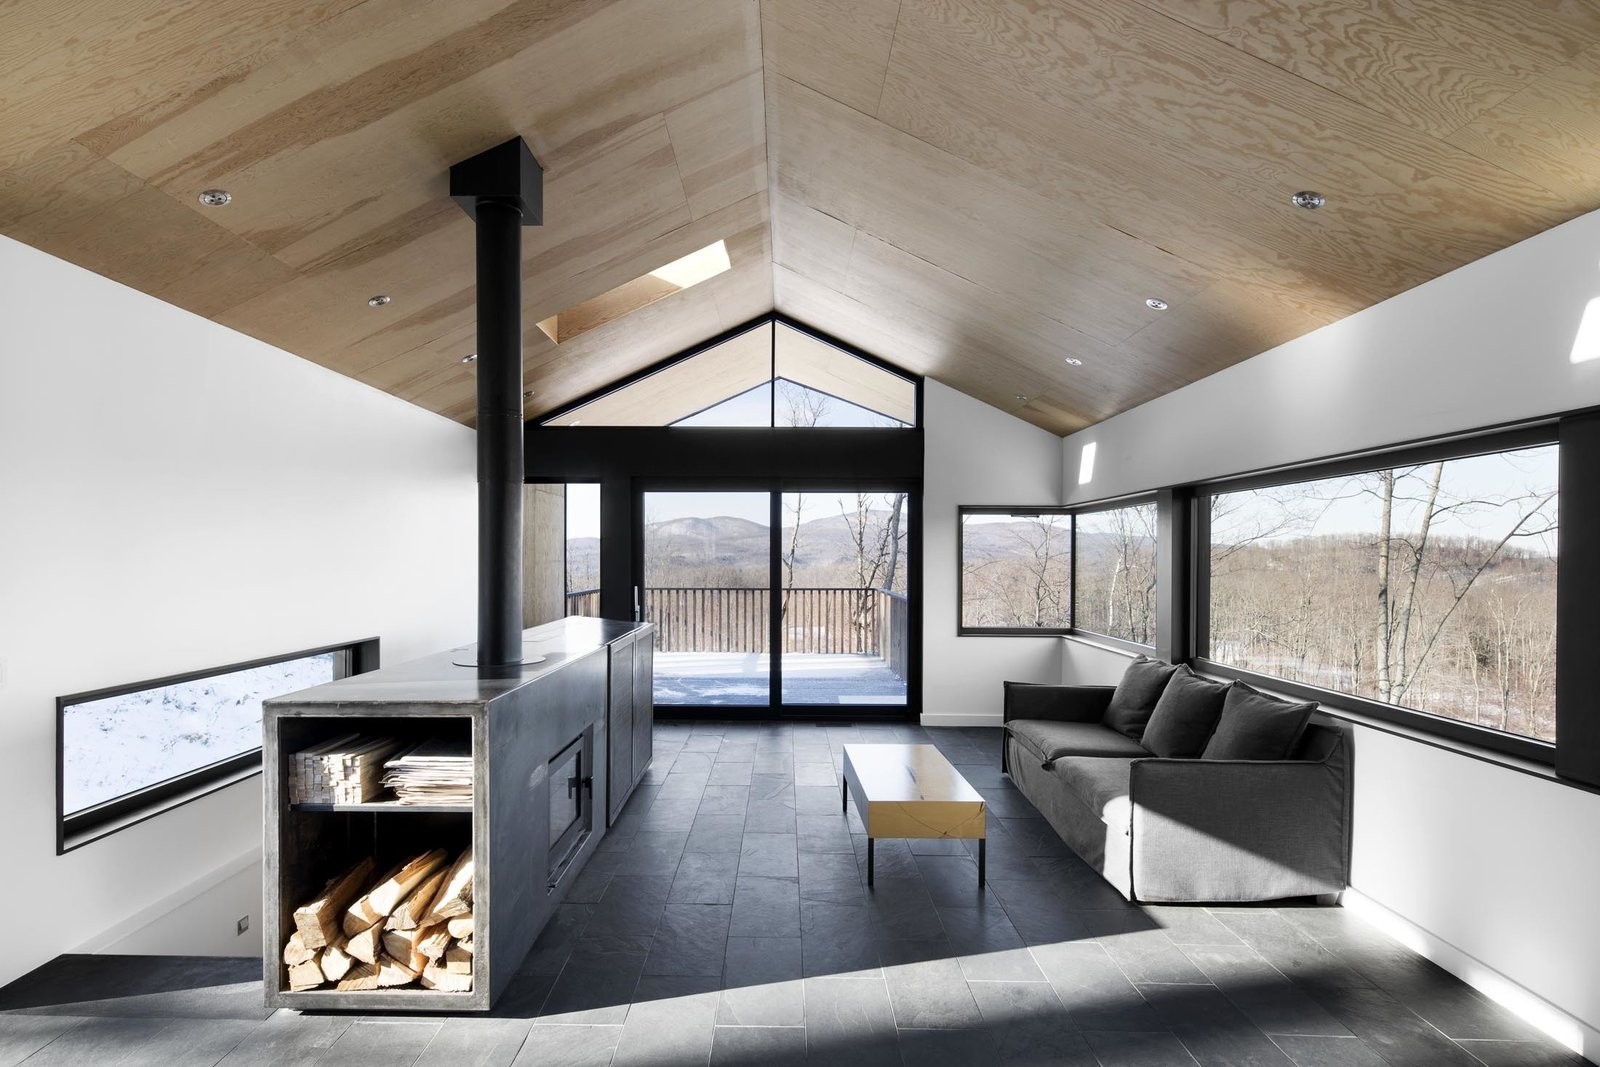 A centralized fireplace was built into a custom, multi-purpose cabinet welded from sheets of hot-rolled steel. It stores firewood, holds a TV, and even acts as a guardrail for the staircase. Tagged: Living Room, Coffee Tables, Recessed Lighting, Sofa, Cement Tile Floor, and Wood Burning Fireplace. Amazing Cantilevered Home in the Mountains - Photo 4 of 11